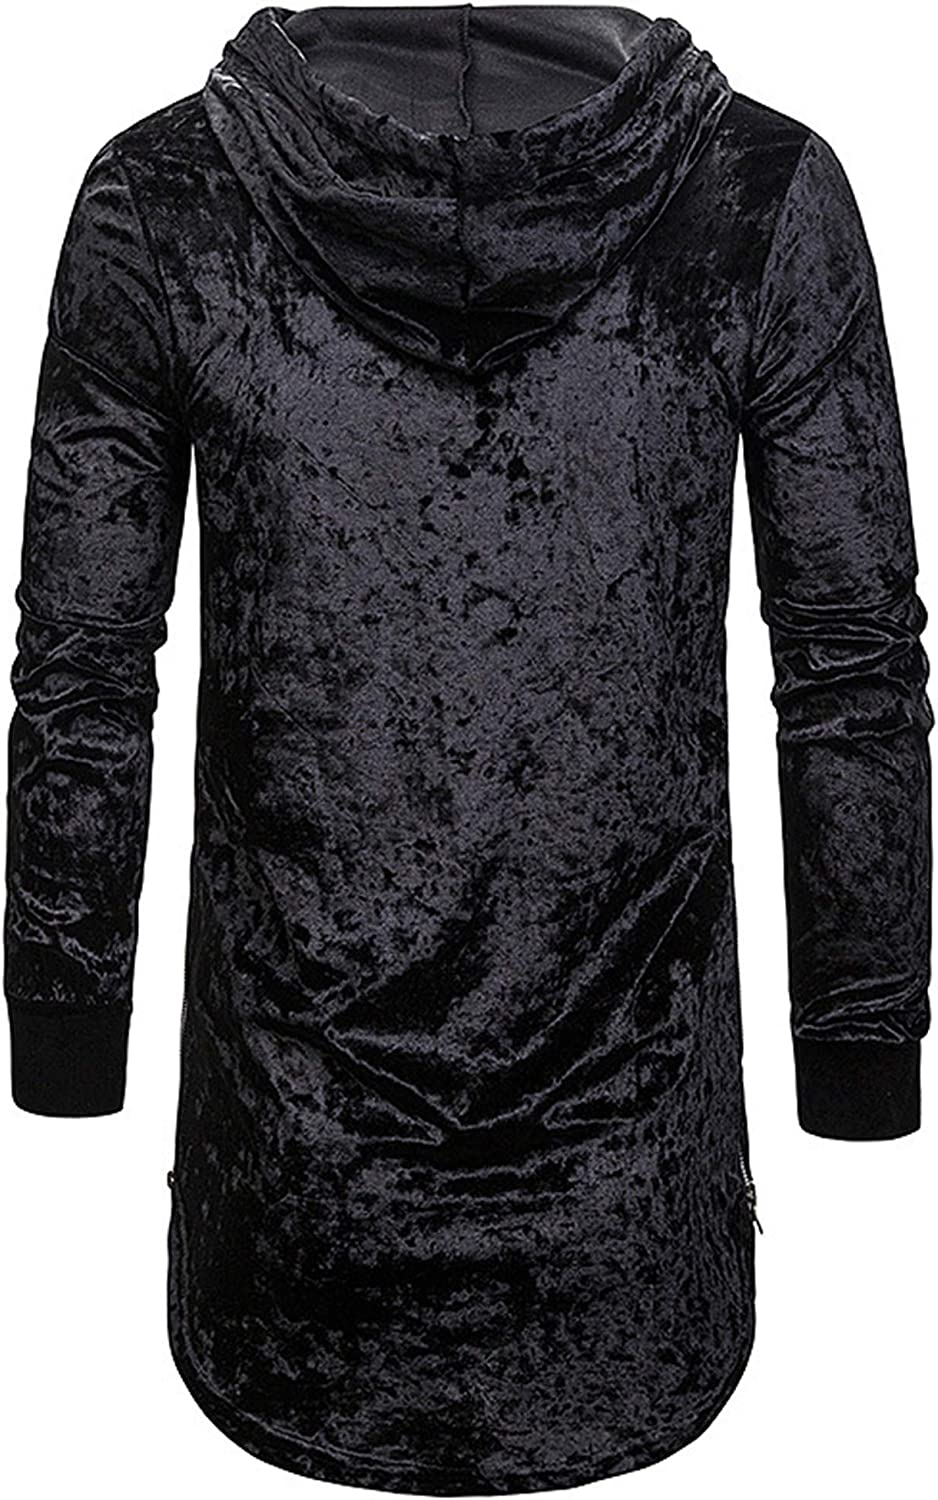 Allonly Mens Fashion Solid Color Big Hood Pullover Long Sleeve Round Bottom Hoodie Sport Workout Sweater